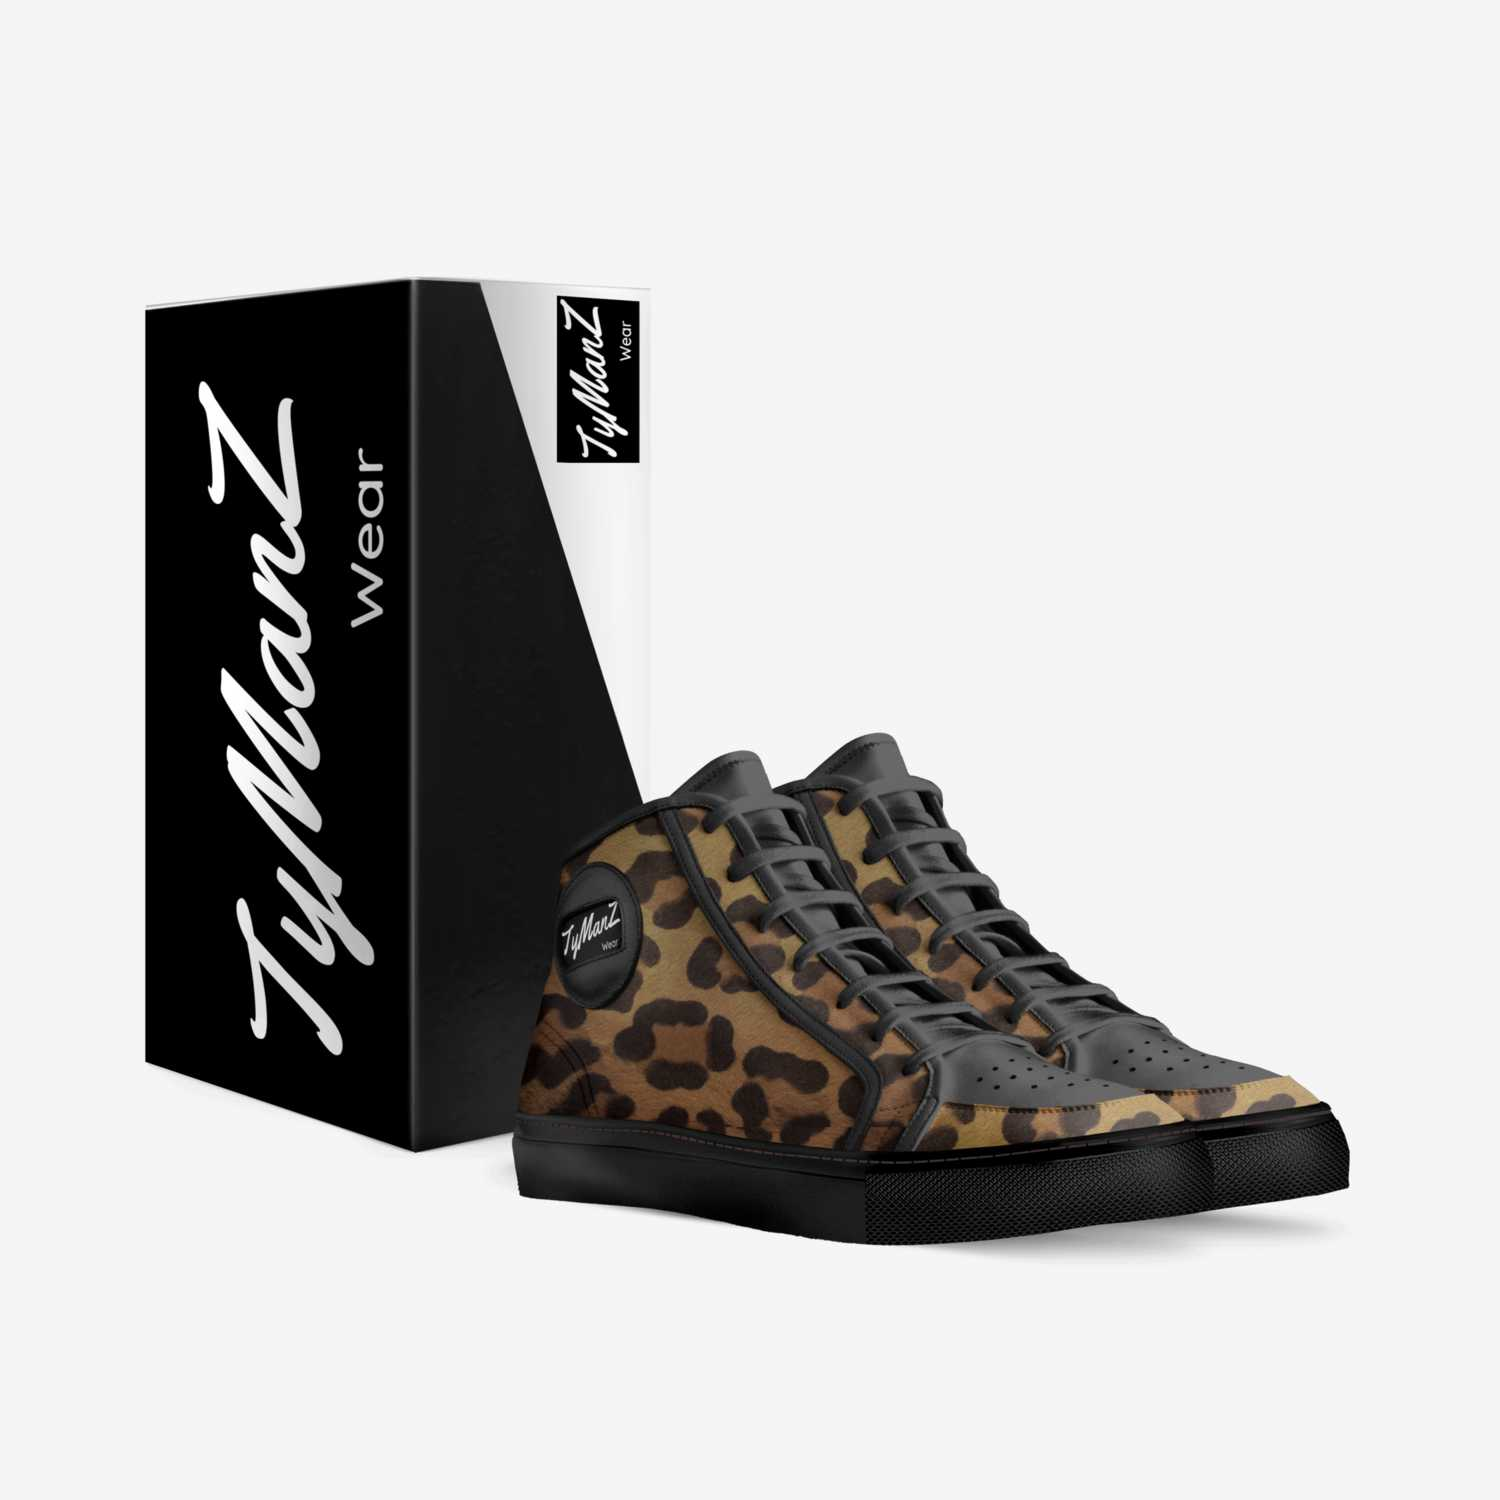 TyManZ custom made in Italy shoes by Ty Allen | Box view